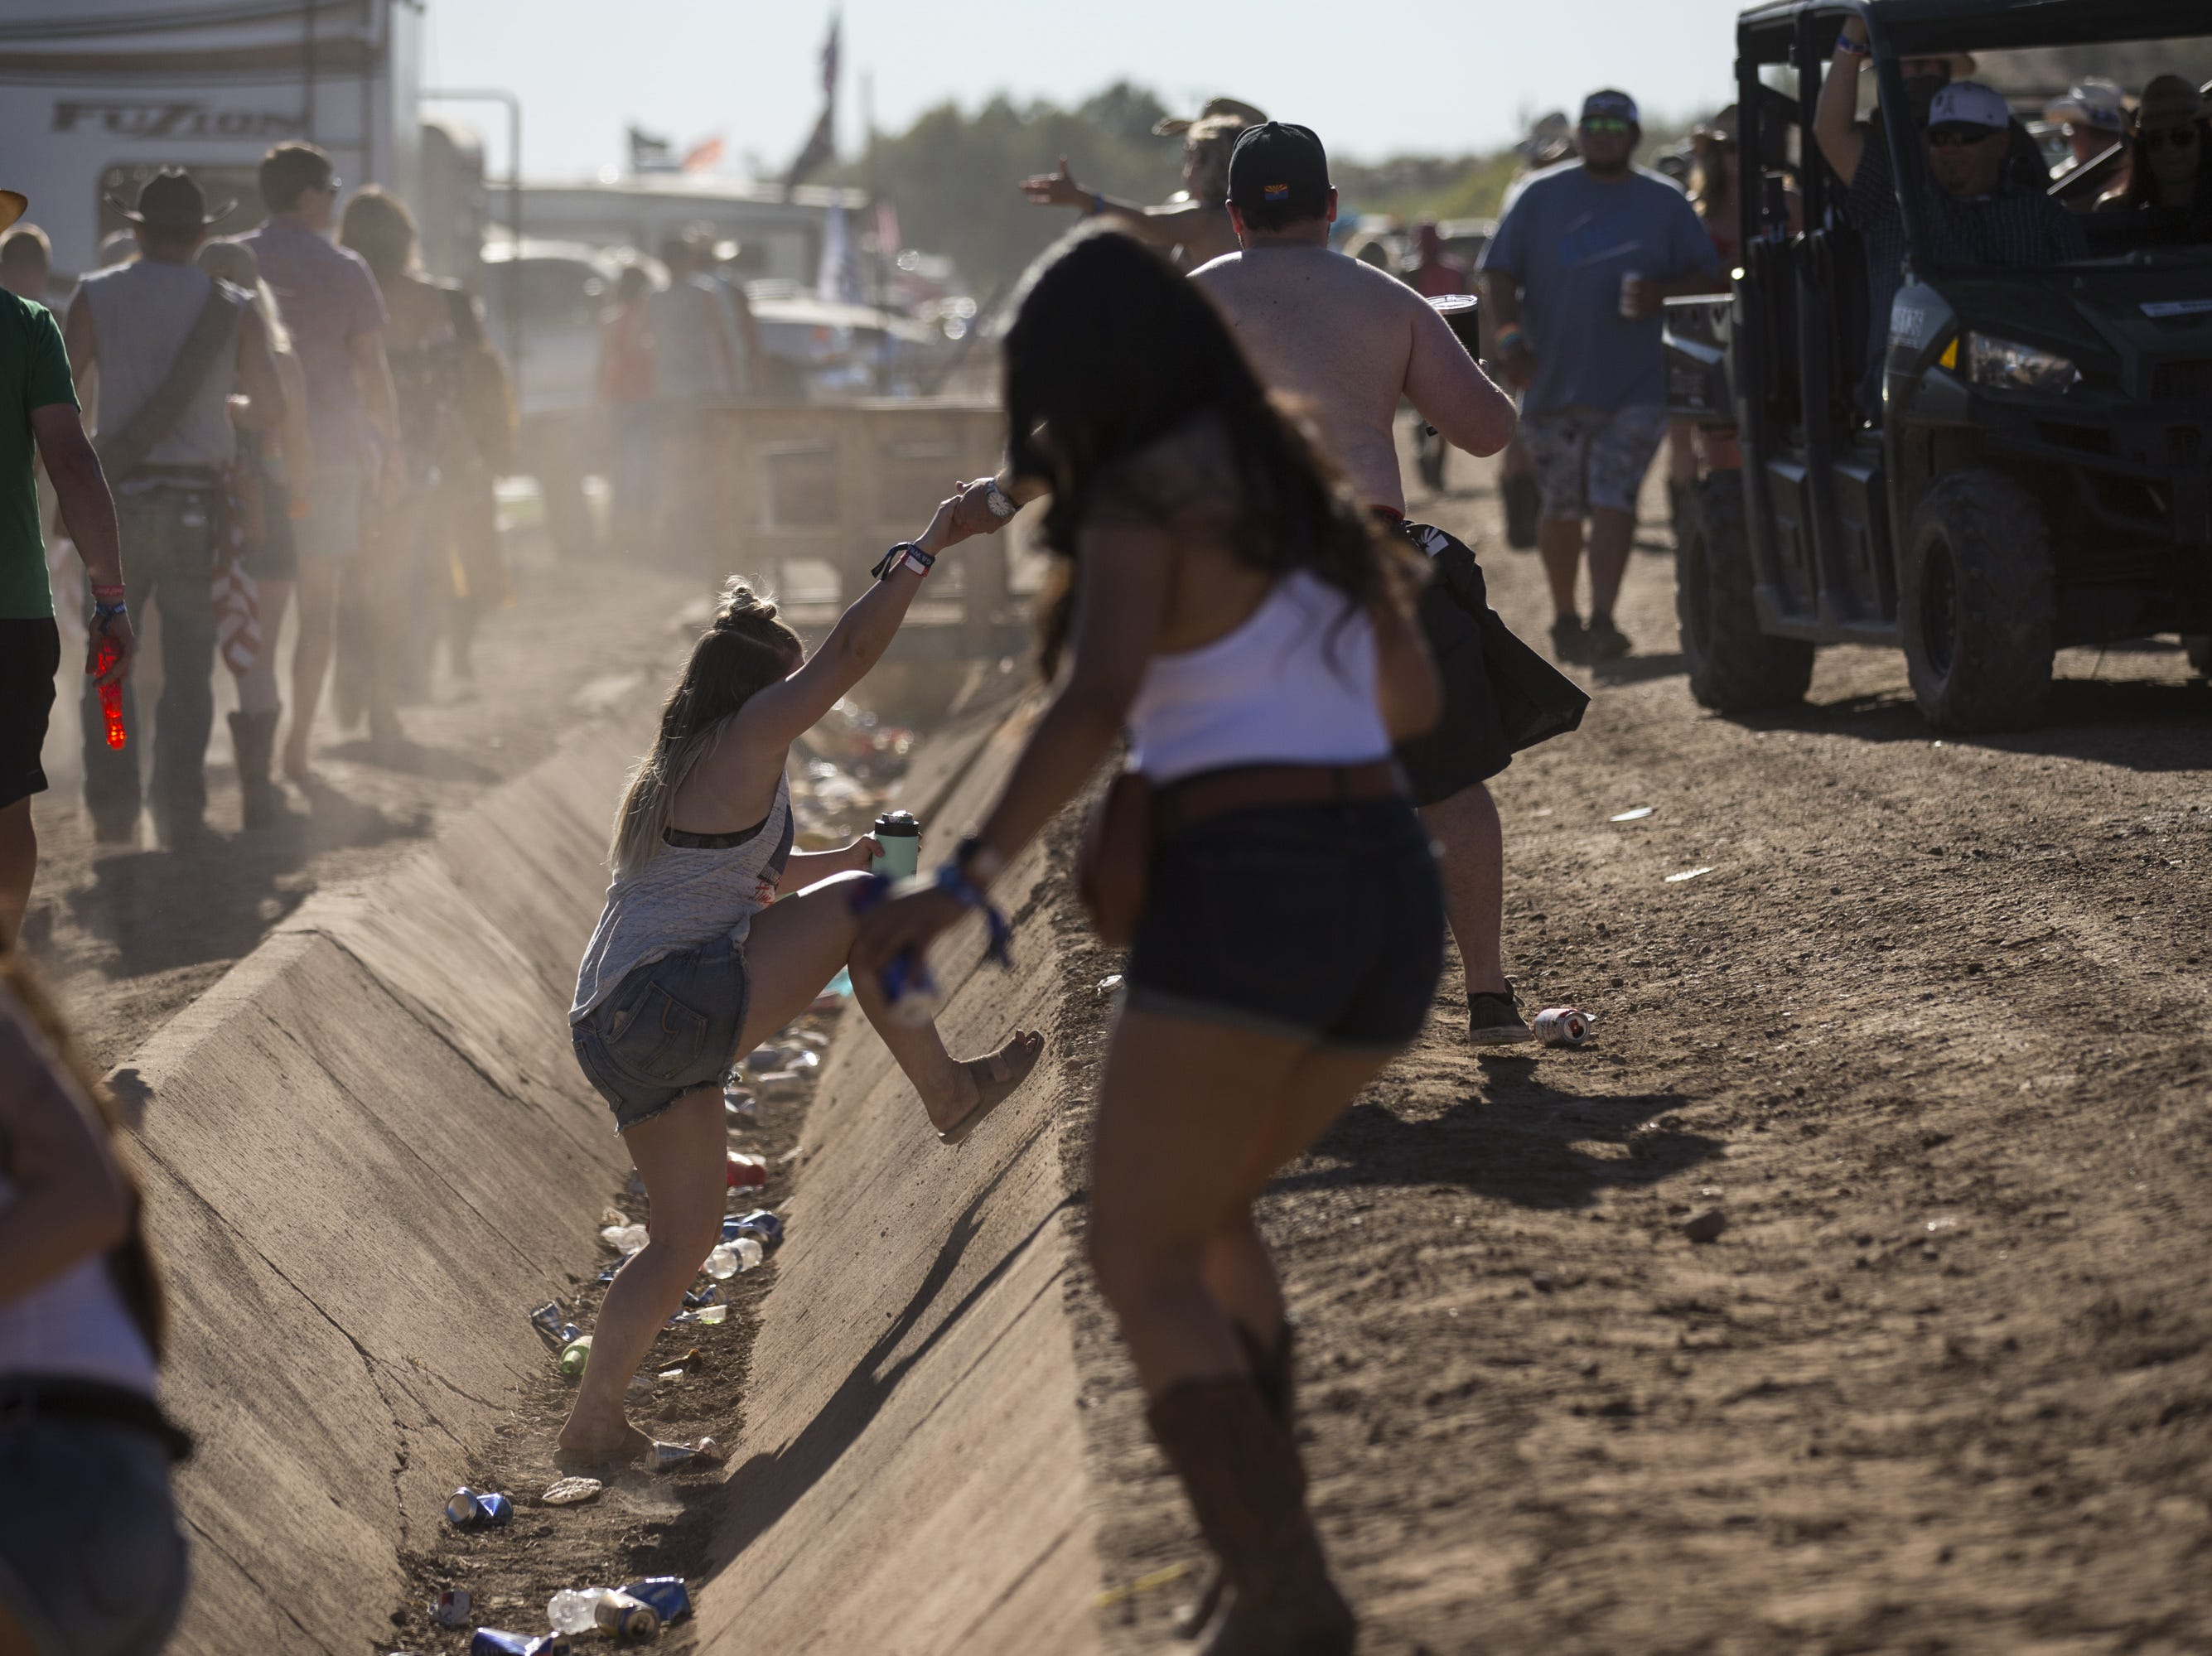 Festivalgoers cross a drainage ditch on Saturday, Apr. 13, 2019, during Day 3 of Country Thunder Arizona in Florence, Ariz.